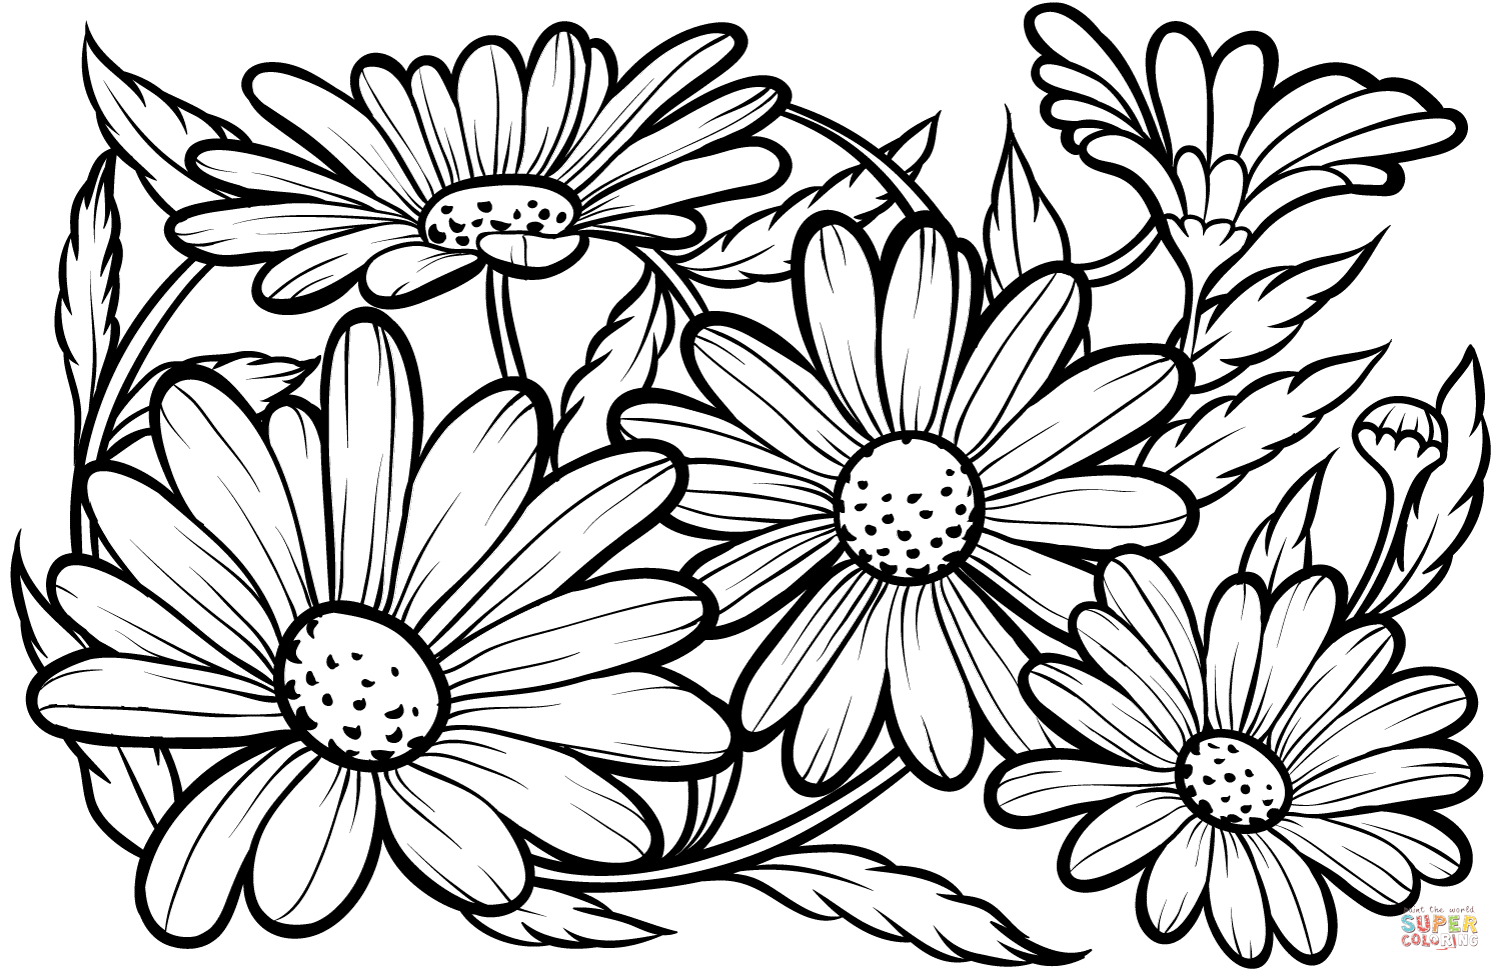 Daisies Coloring Pages Coloring Home